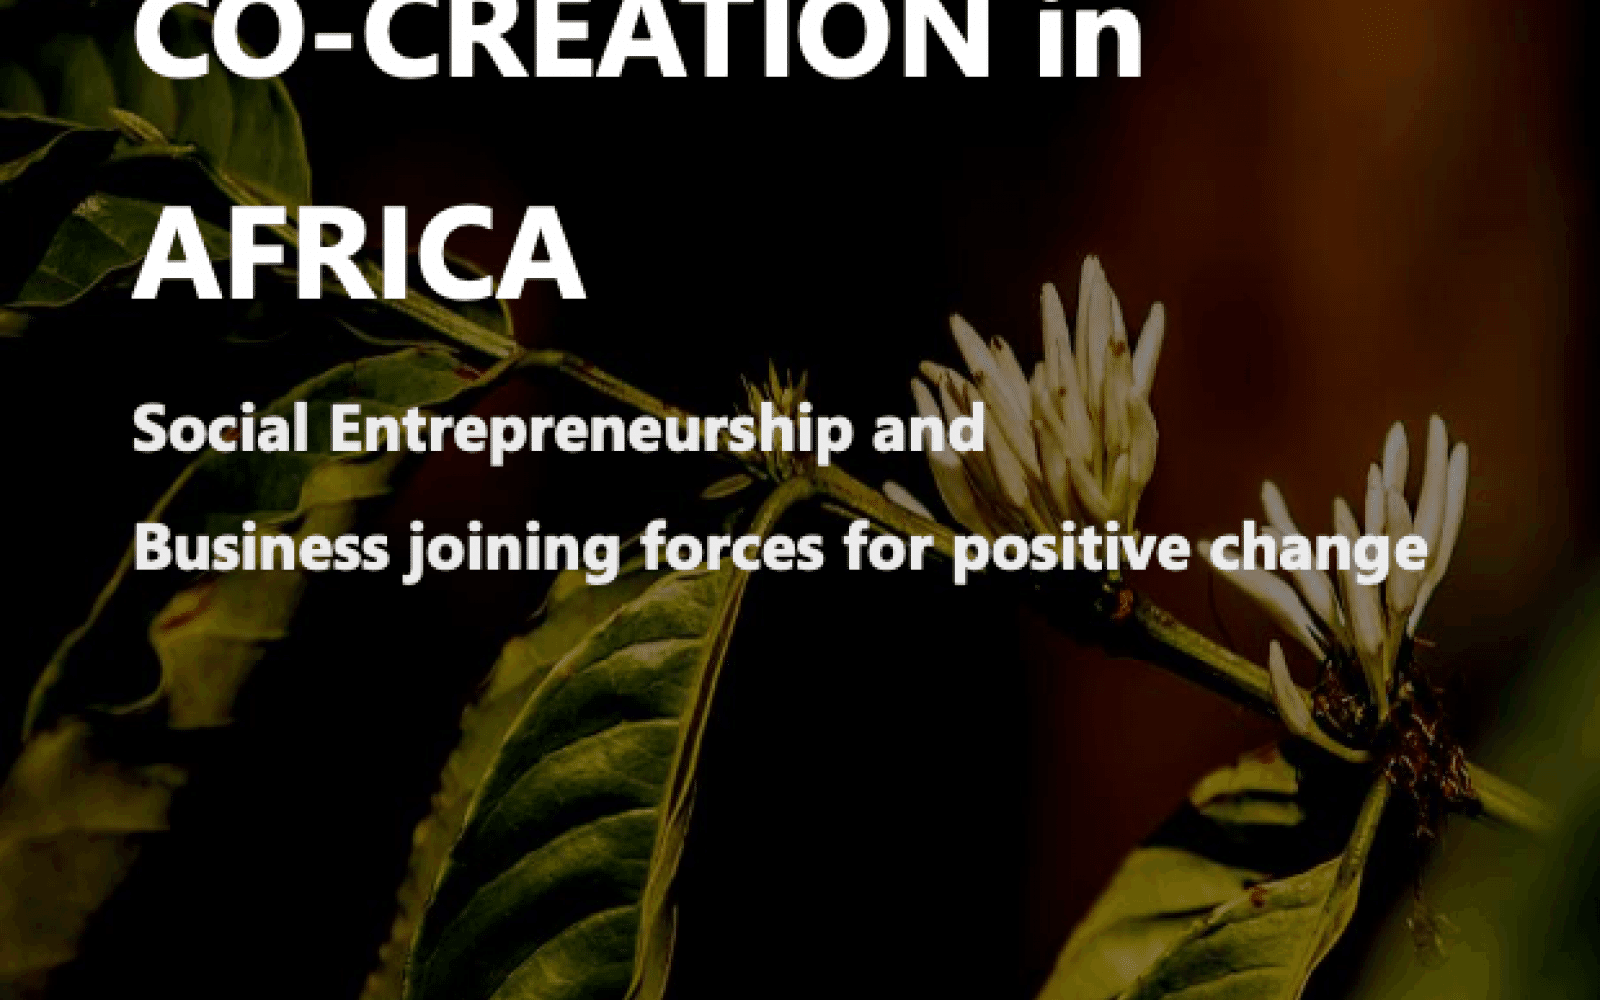 Social and Business Co-Creation in Africa